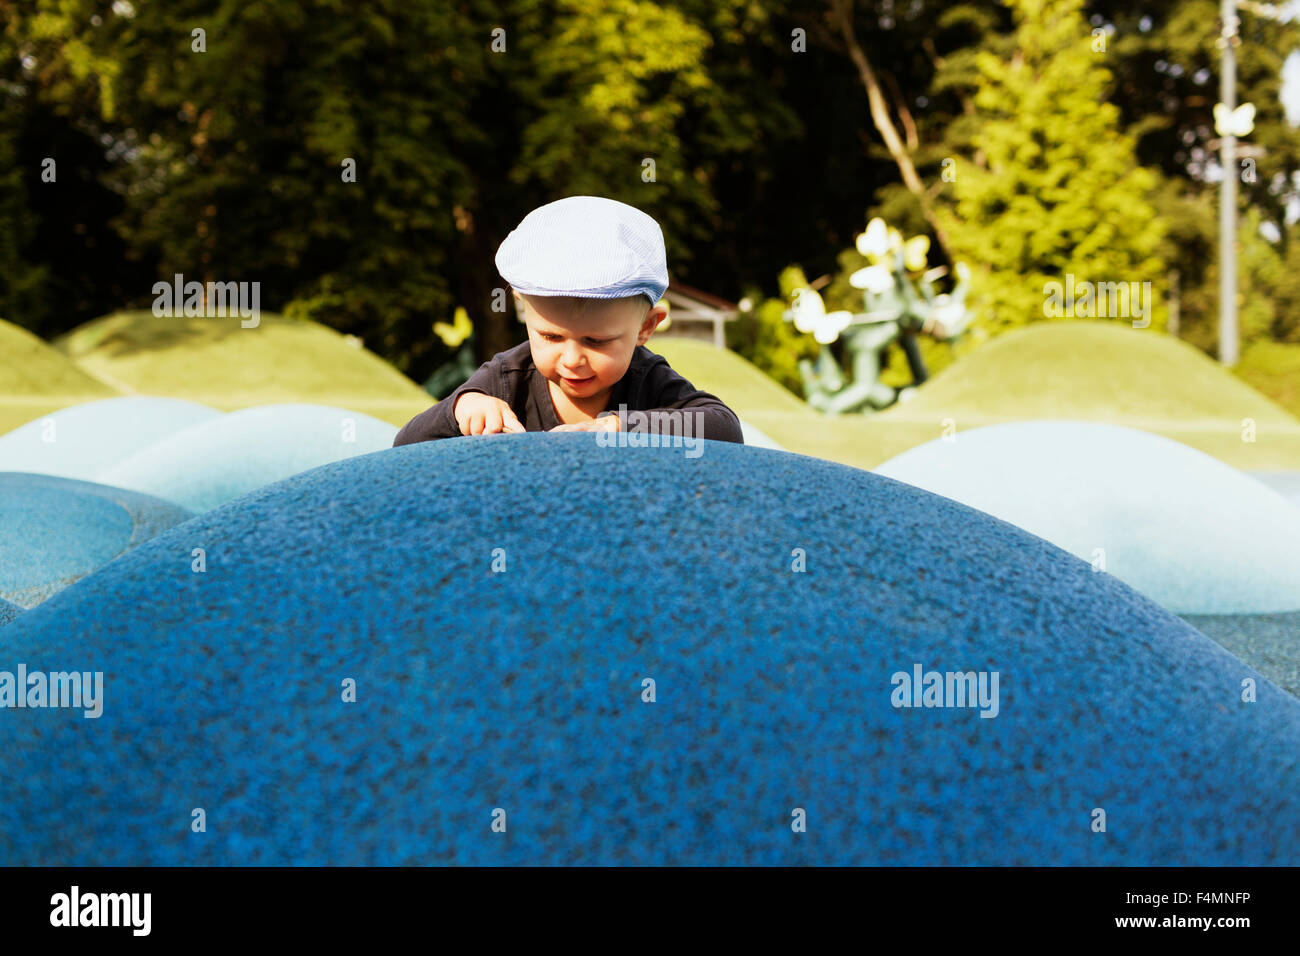 Cute boy leaning on artificial hill in park - Stock Image